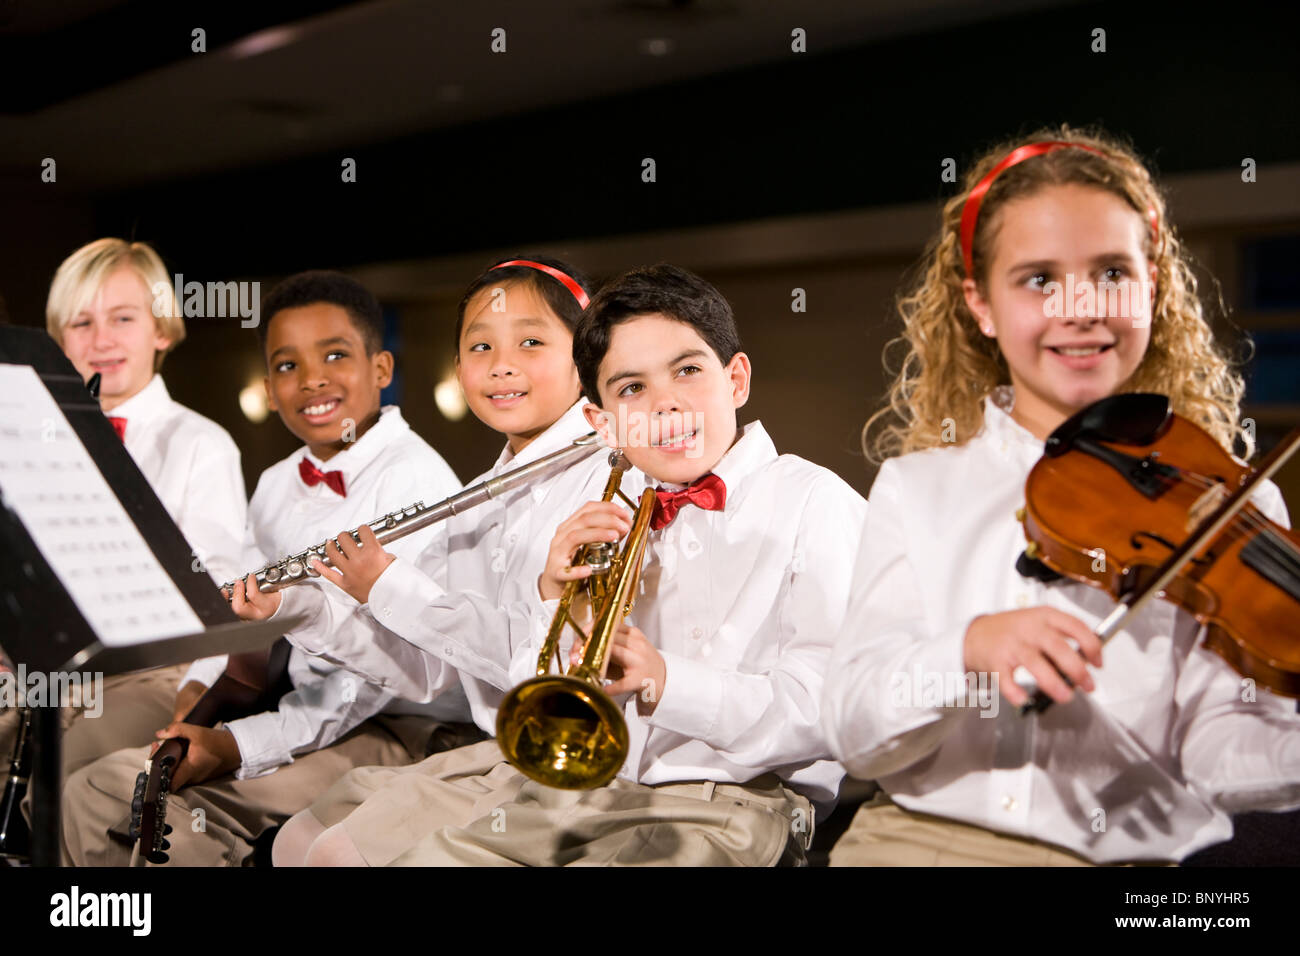 Children playing musical instruments in band - Stock Image